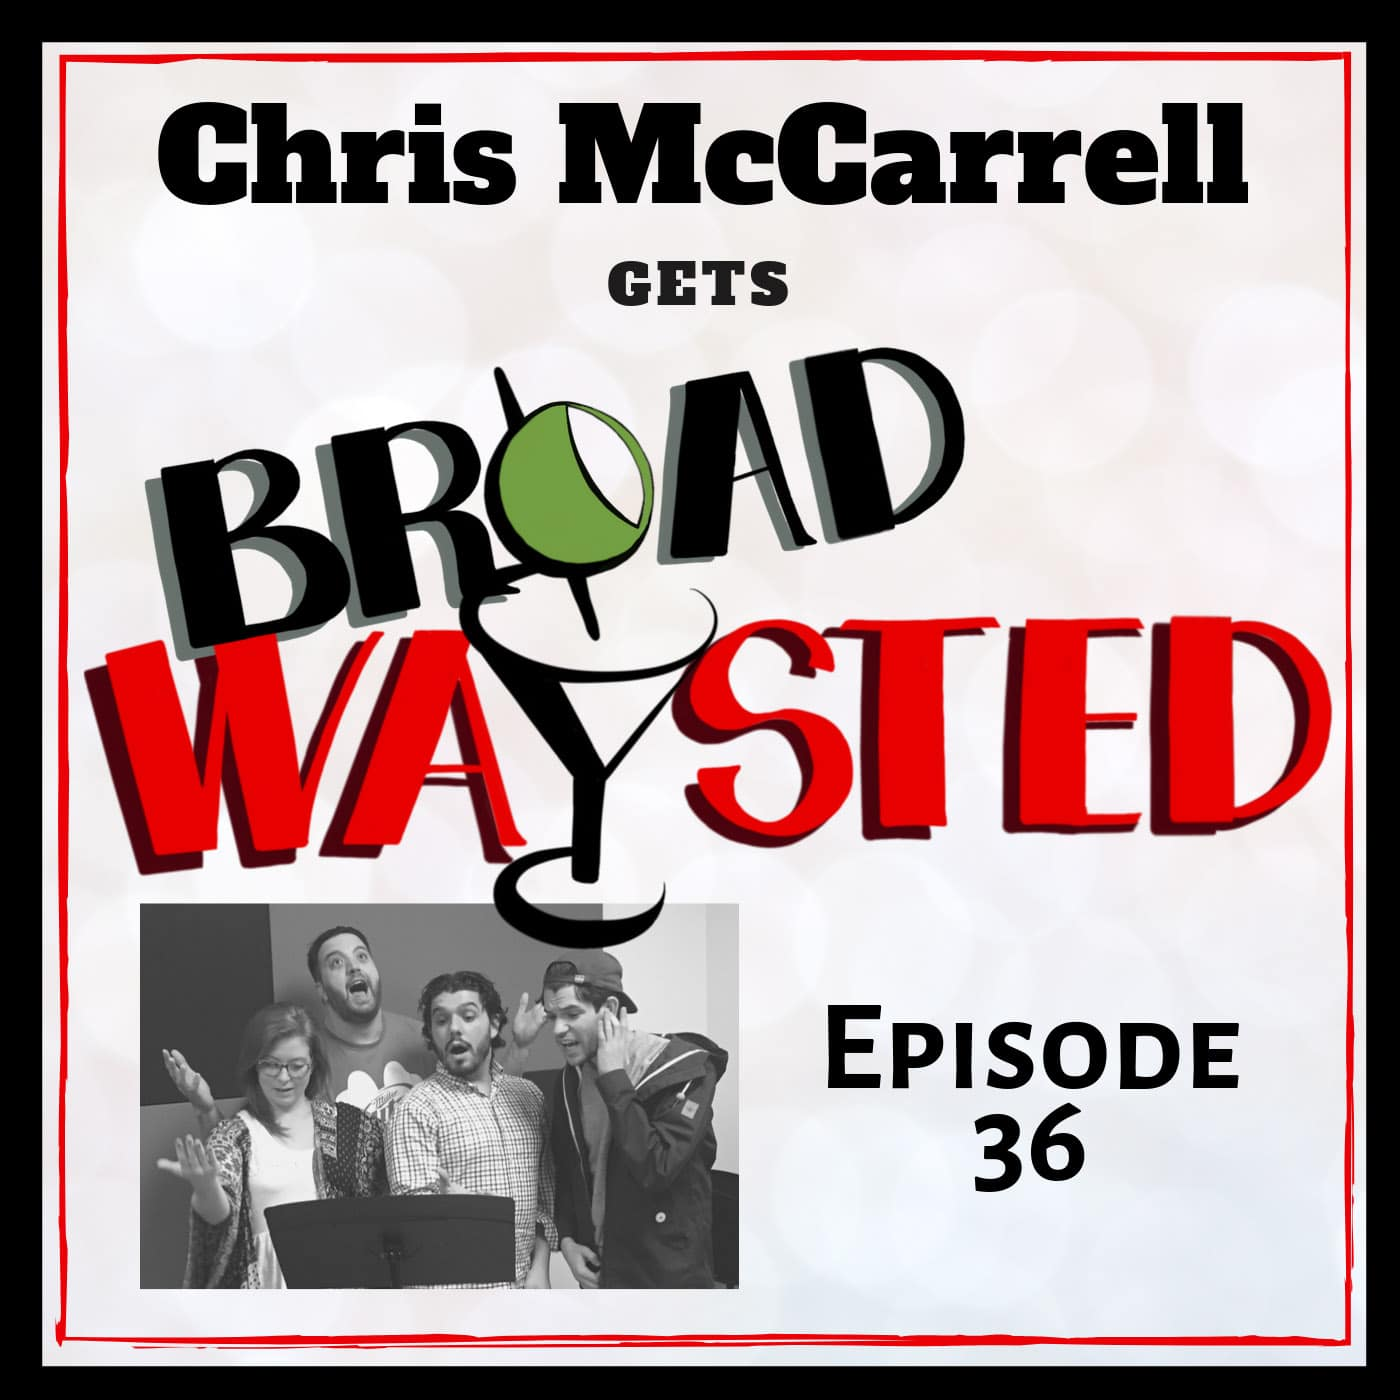 Broadwaysted Ep 36 Chris McCarrell